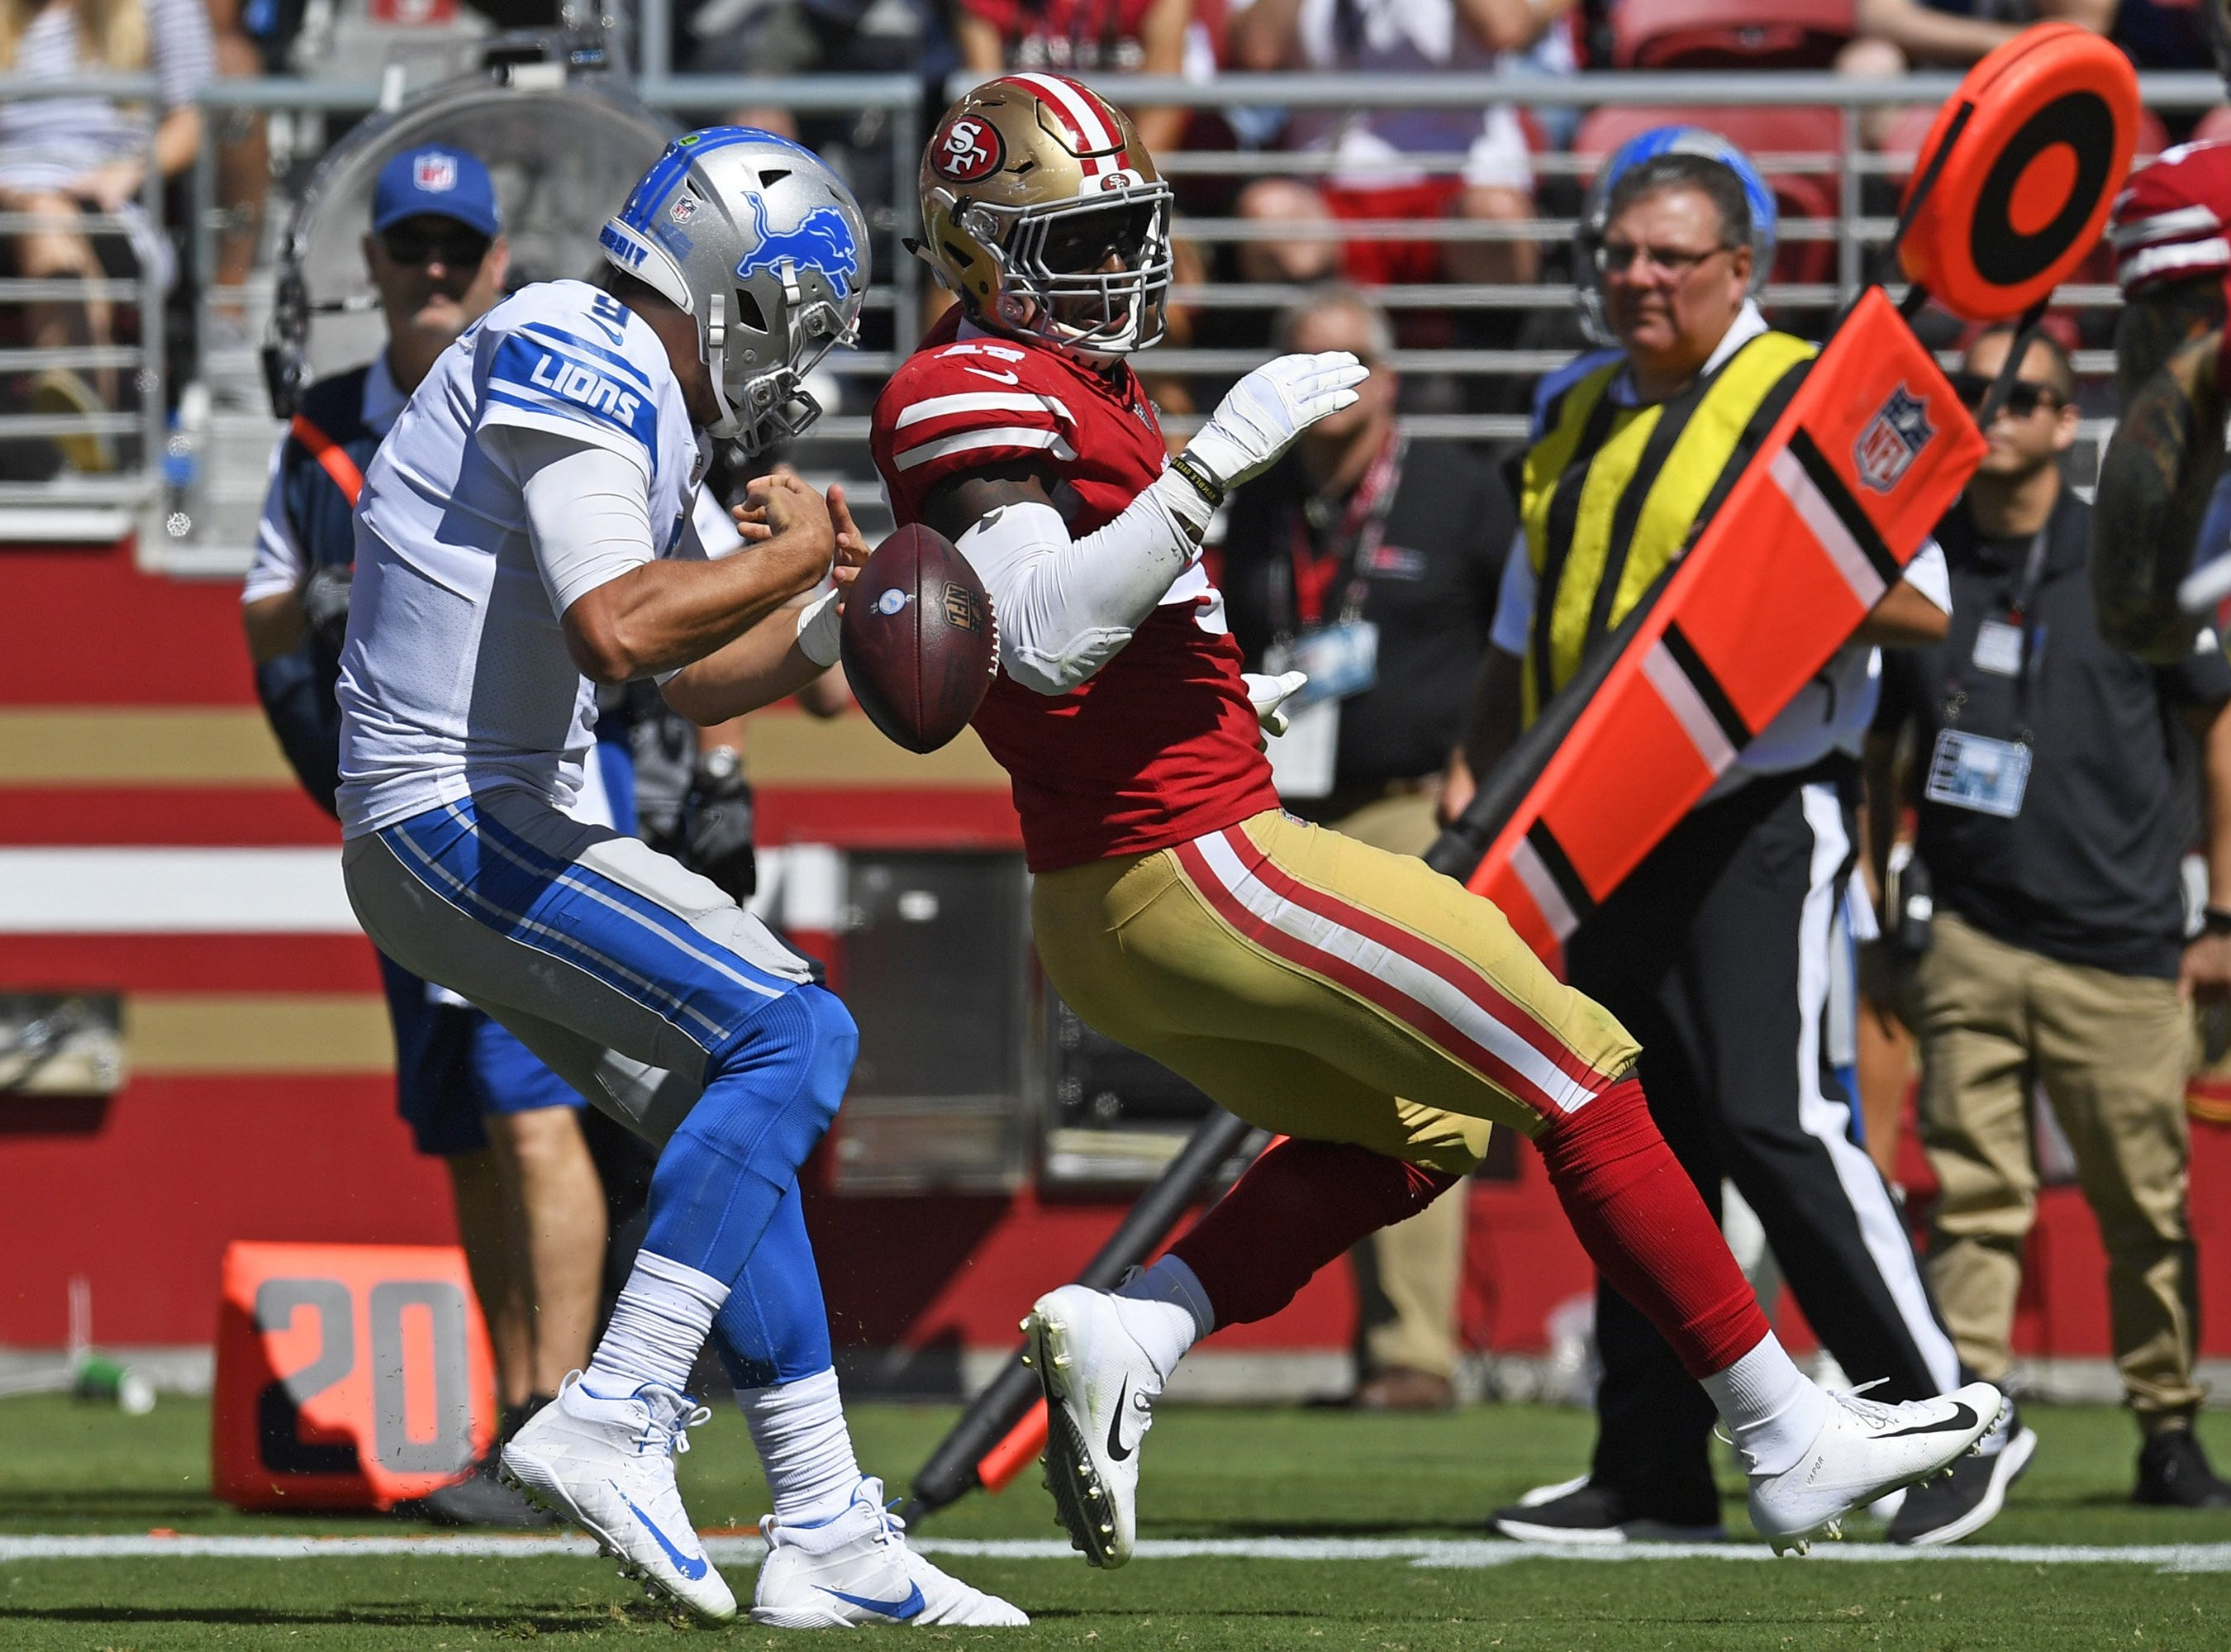 Lions quarterback Matthew Stafford fumbles the ball after being pressured by the 49ers' Elijah Lee in the second quarter of the Lions' 30-27 loss on Sunday, Sept. 16, 2018, in Santa Clara, Calif.